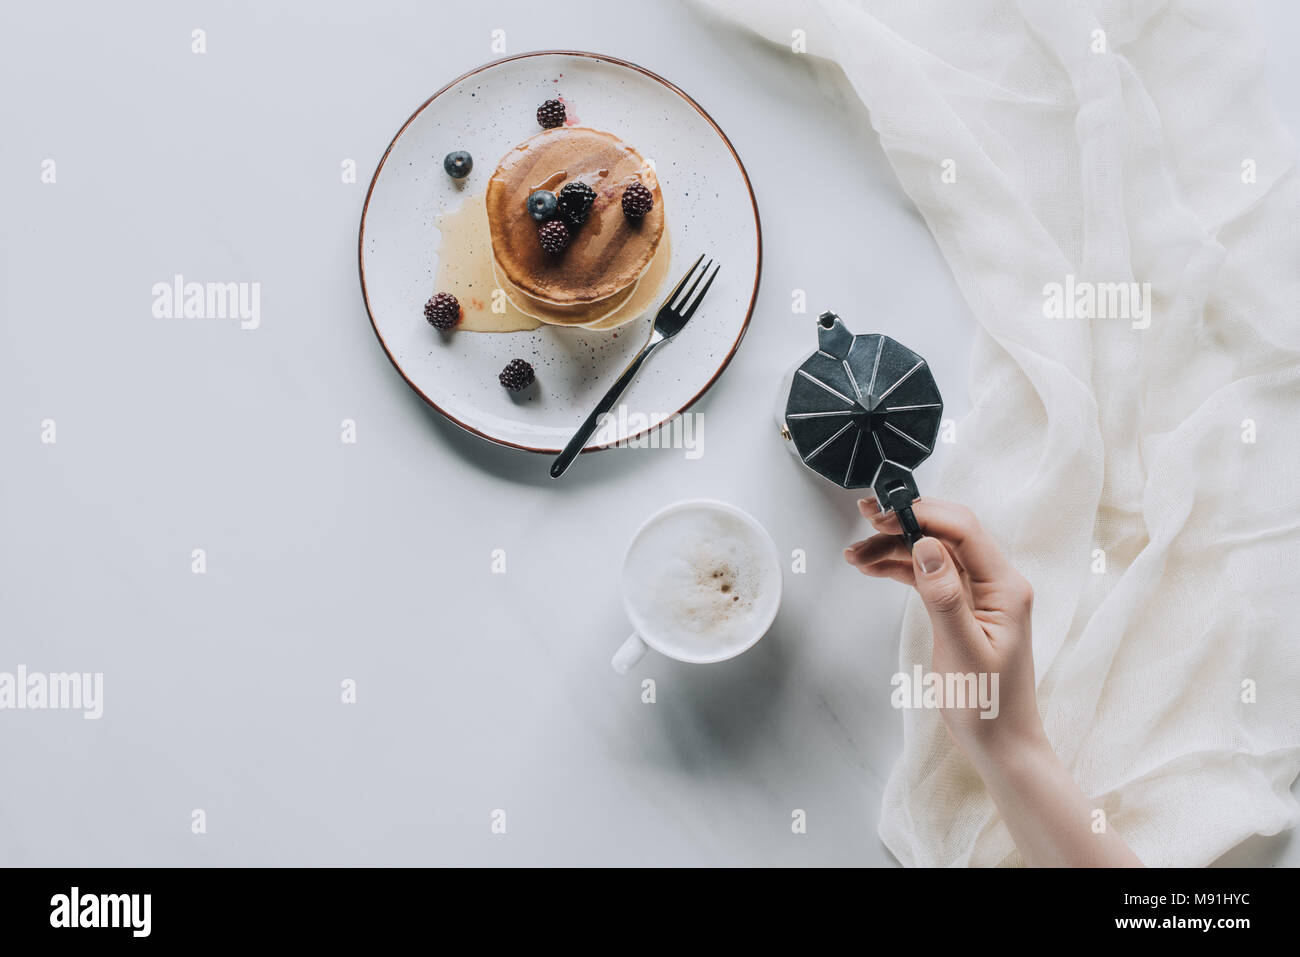 top view of person holding coffee maker while eating pancakes with berries for breakfast - Stock Image